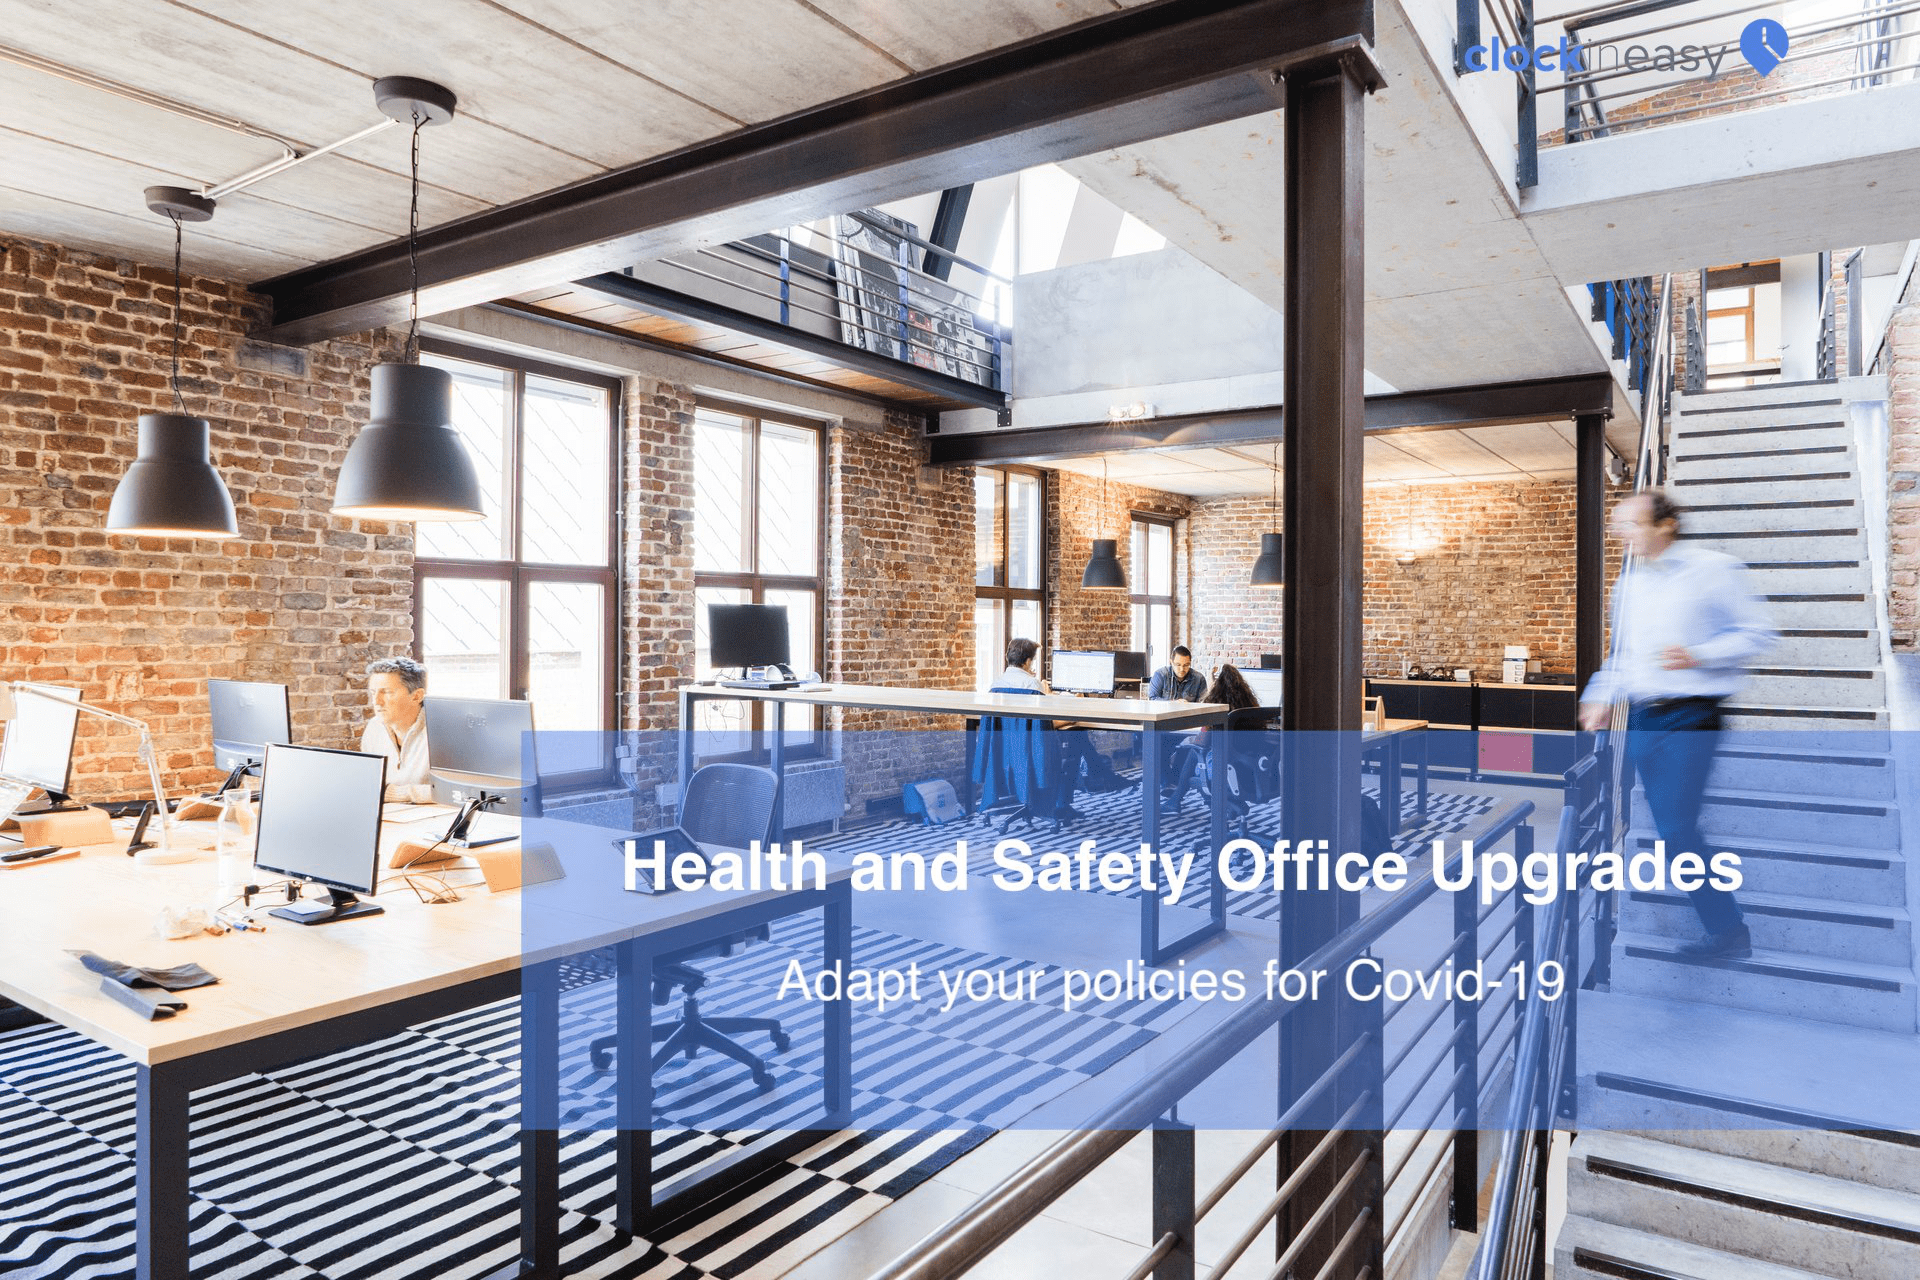 Health-and-safety-office-upgrades-2